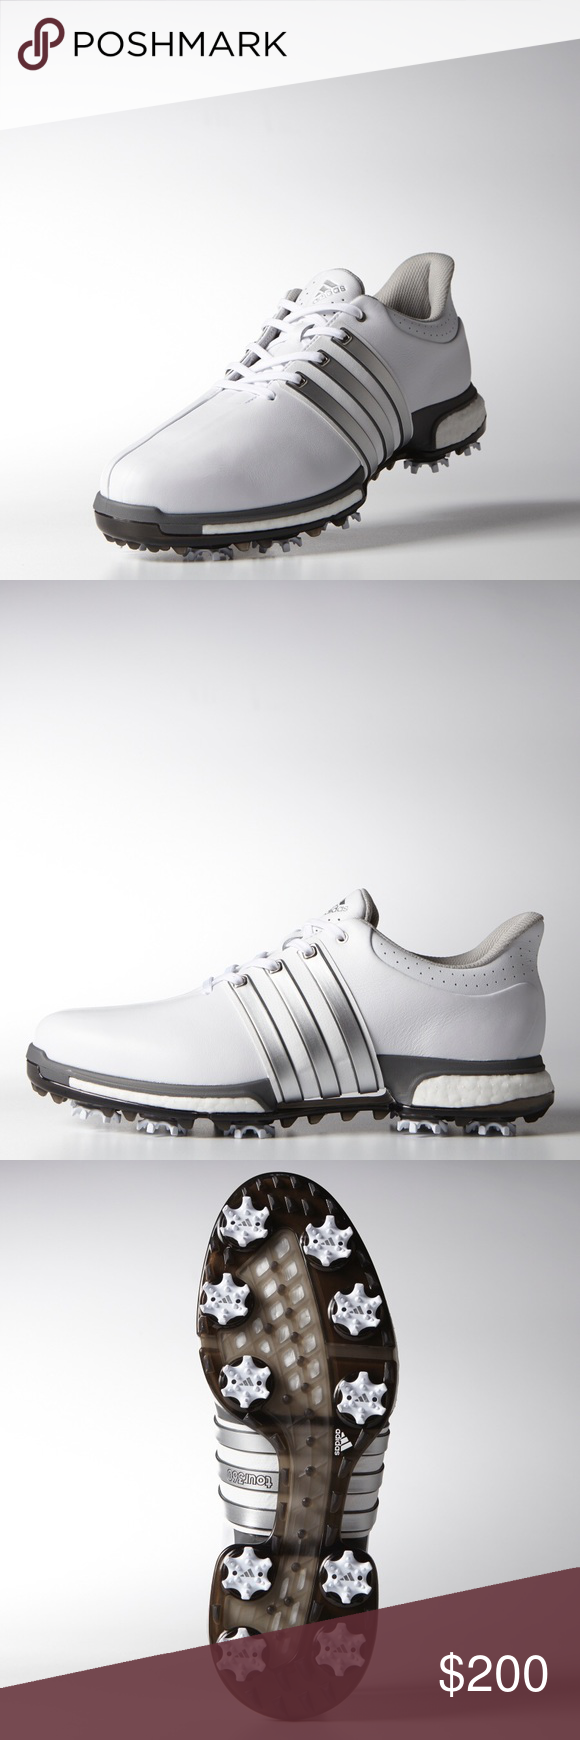 Patentar Reanimar Creo que estoy enfermo  Adidas Tour 360 Boost Golf Shoes Brand new! Still in the box. Will add  additional pictures if necessary. Adidas Shoes Athletic Shoes   Golf shoes, Adidas  tour 360, Shoes